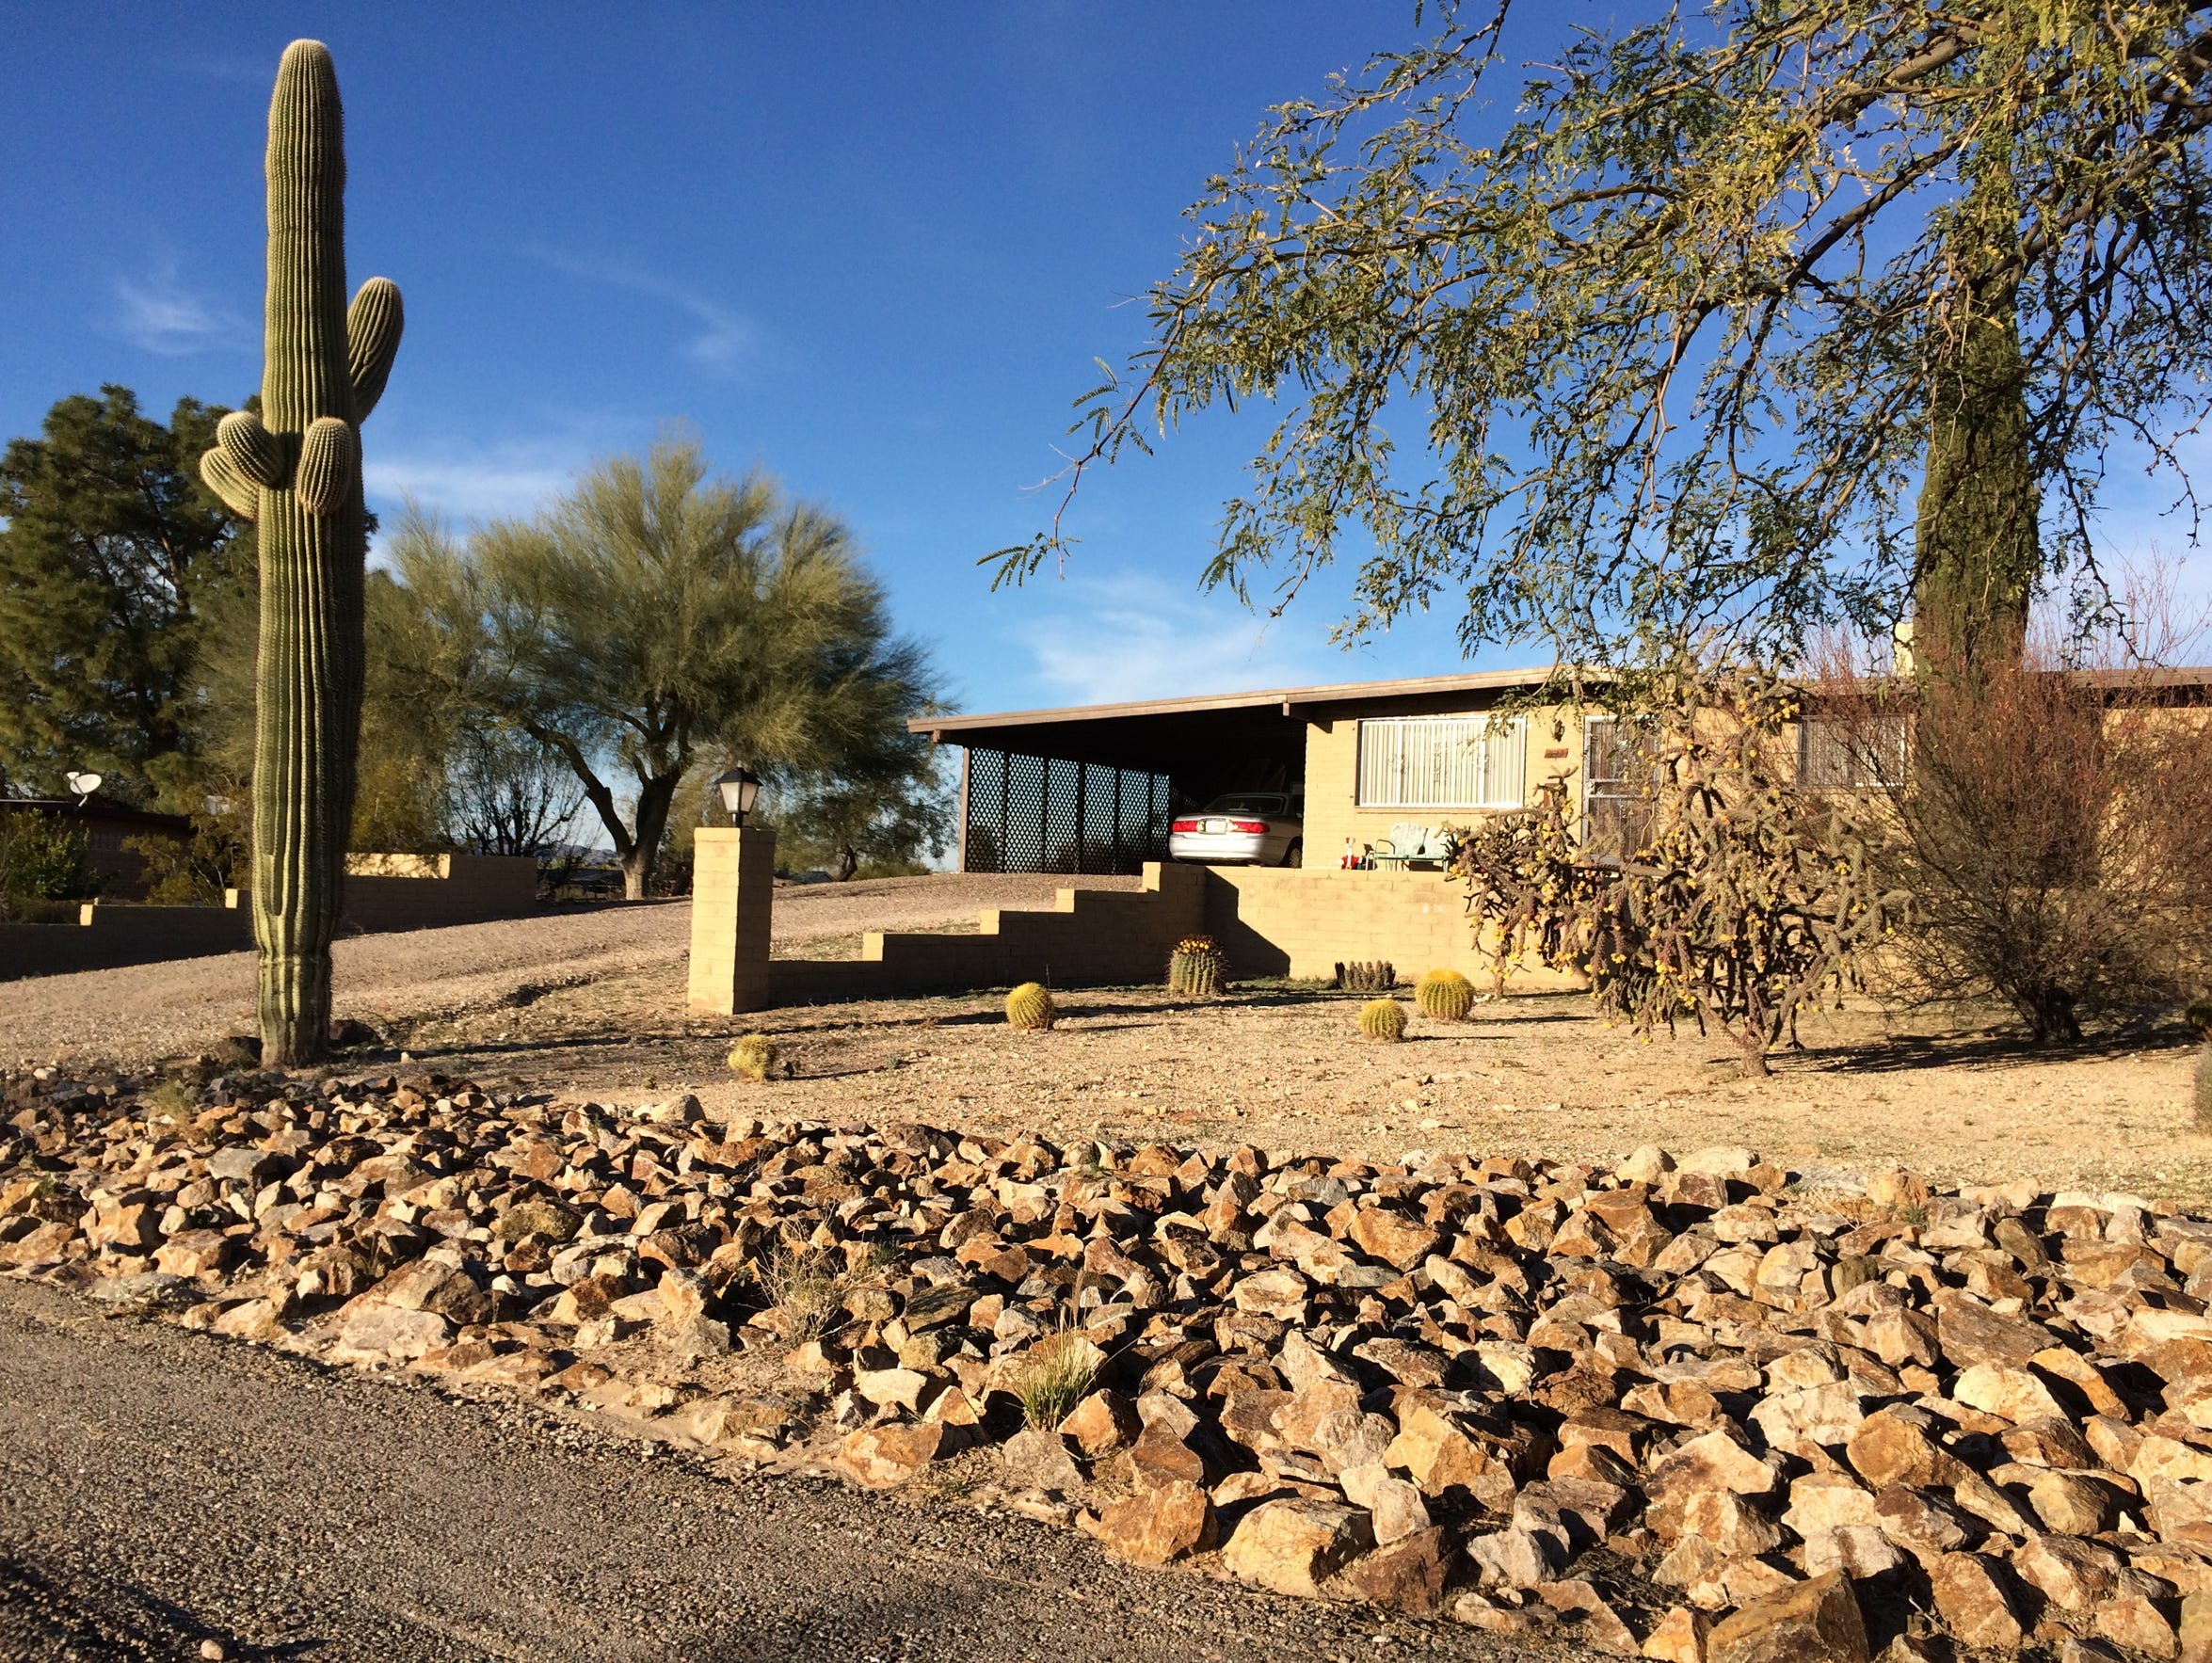 The Tucson home where U.S. Rep. Kyrsten Sinema lived